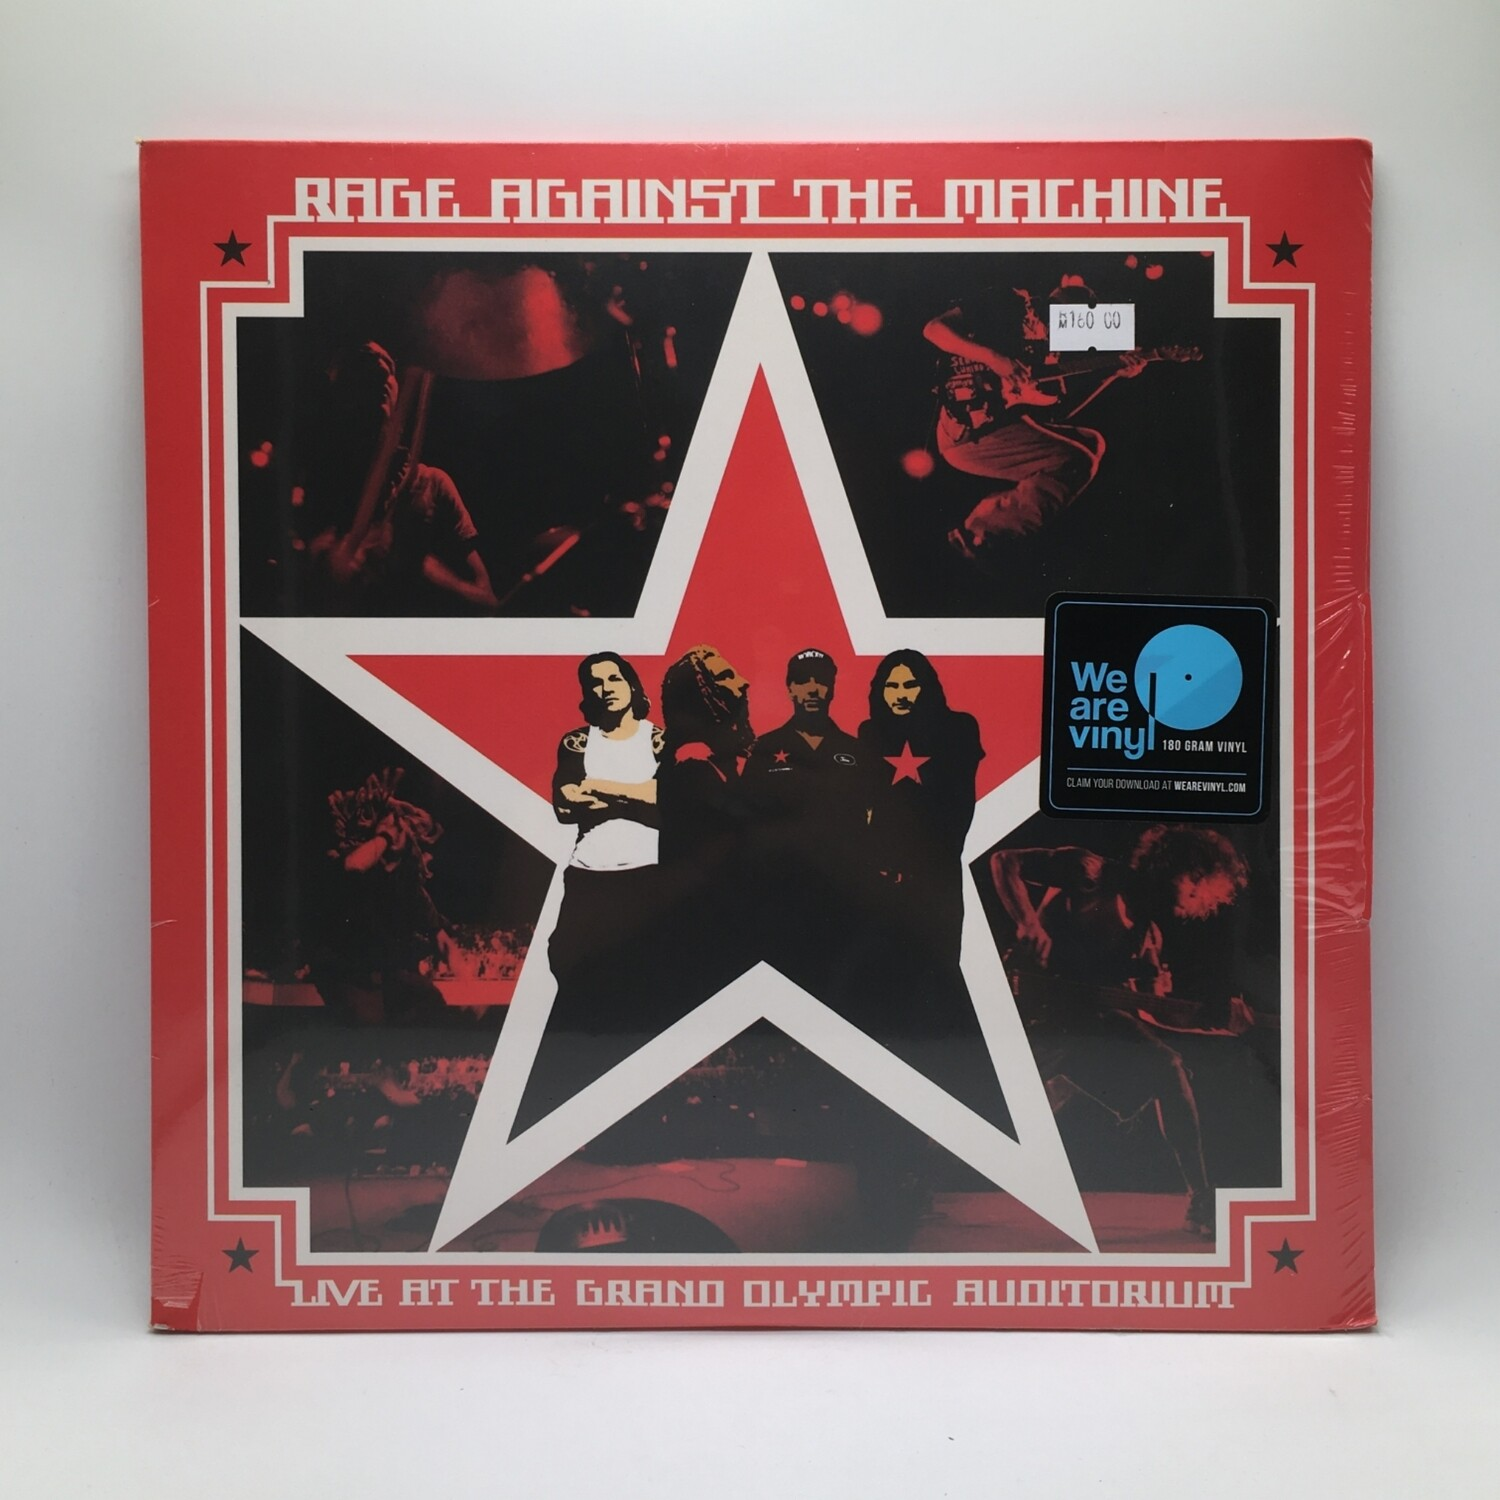 RAGE AGAINST THE MACHINE -LIVE AT THE GRAND OLYMPIC AUDITORIUM- 2XLP